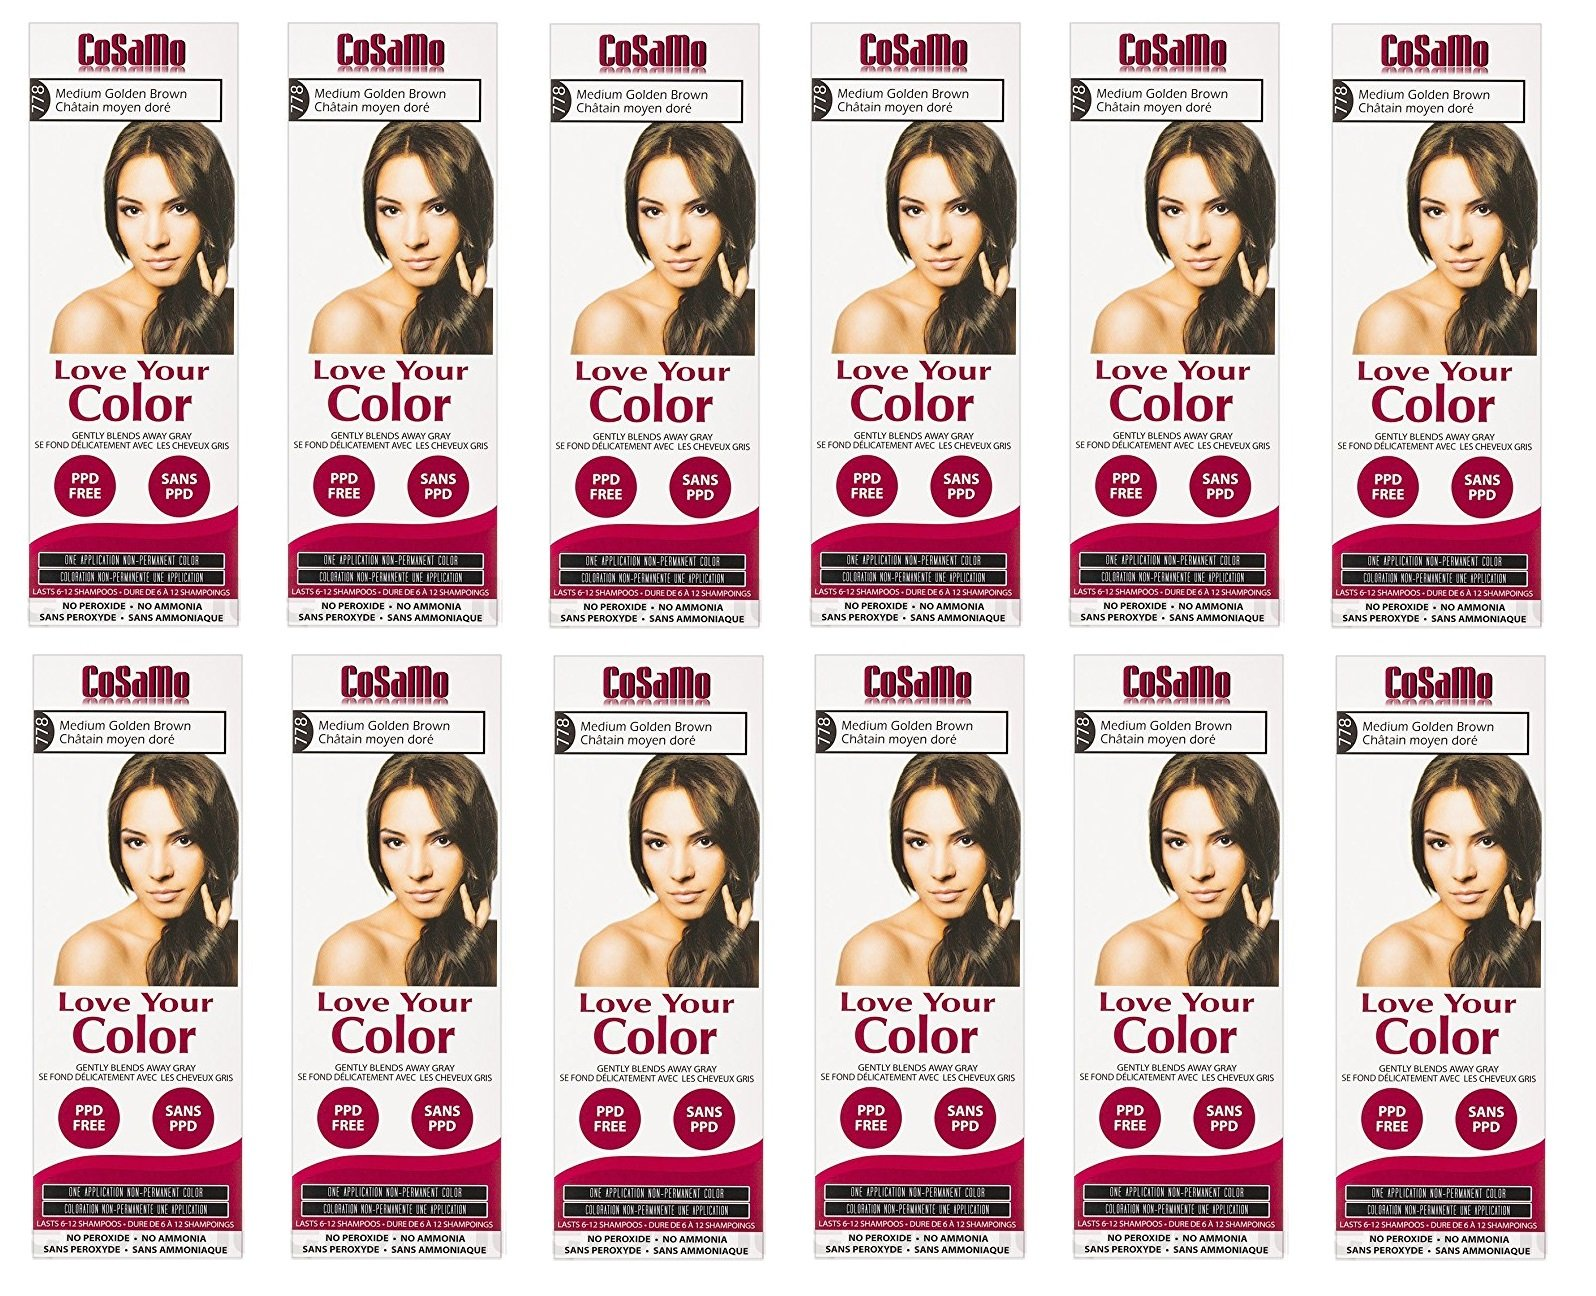 CoSaMo - Love Your Color Non-Permanent Hair Color 778 Medium Golden Brown - 3 oz. (Pack of 12) + FREE Travel Toothbrush, Color May Vary